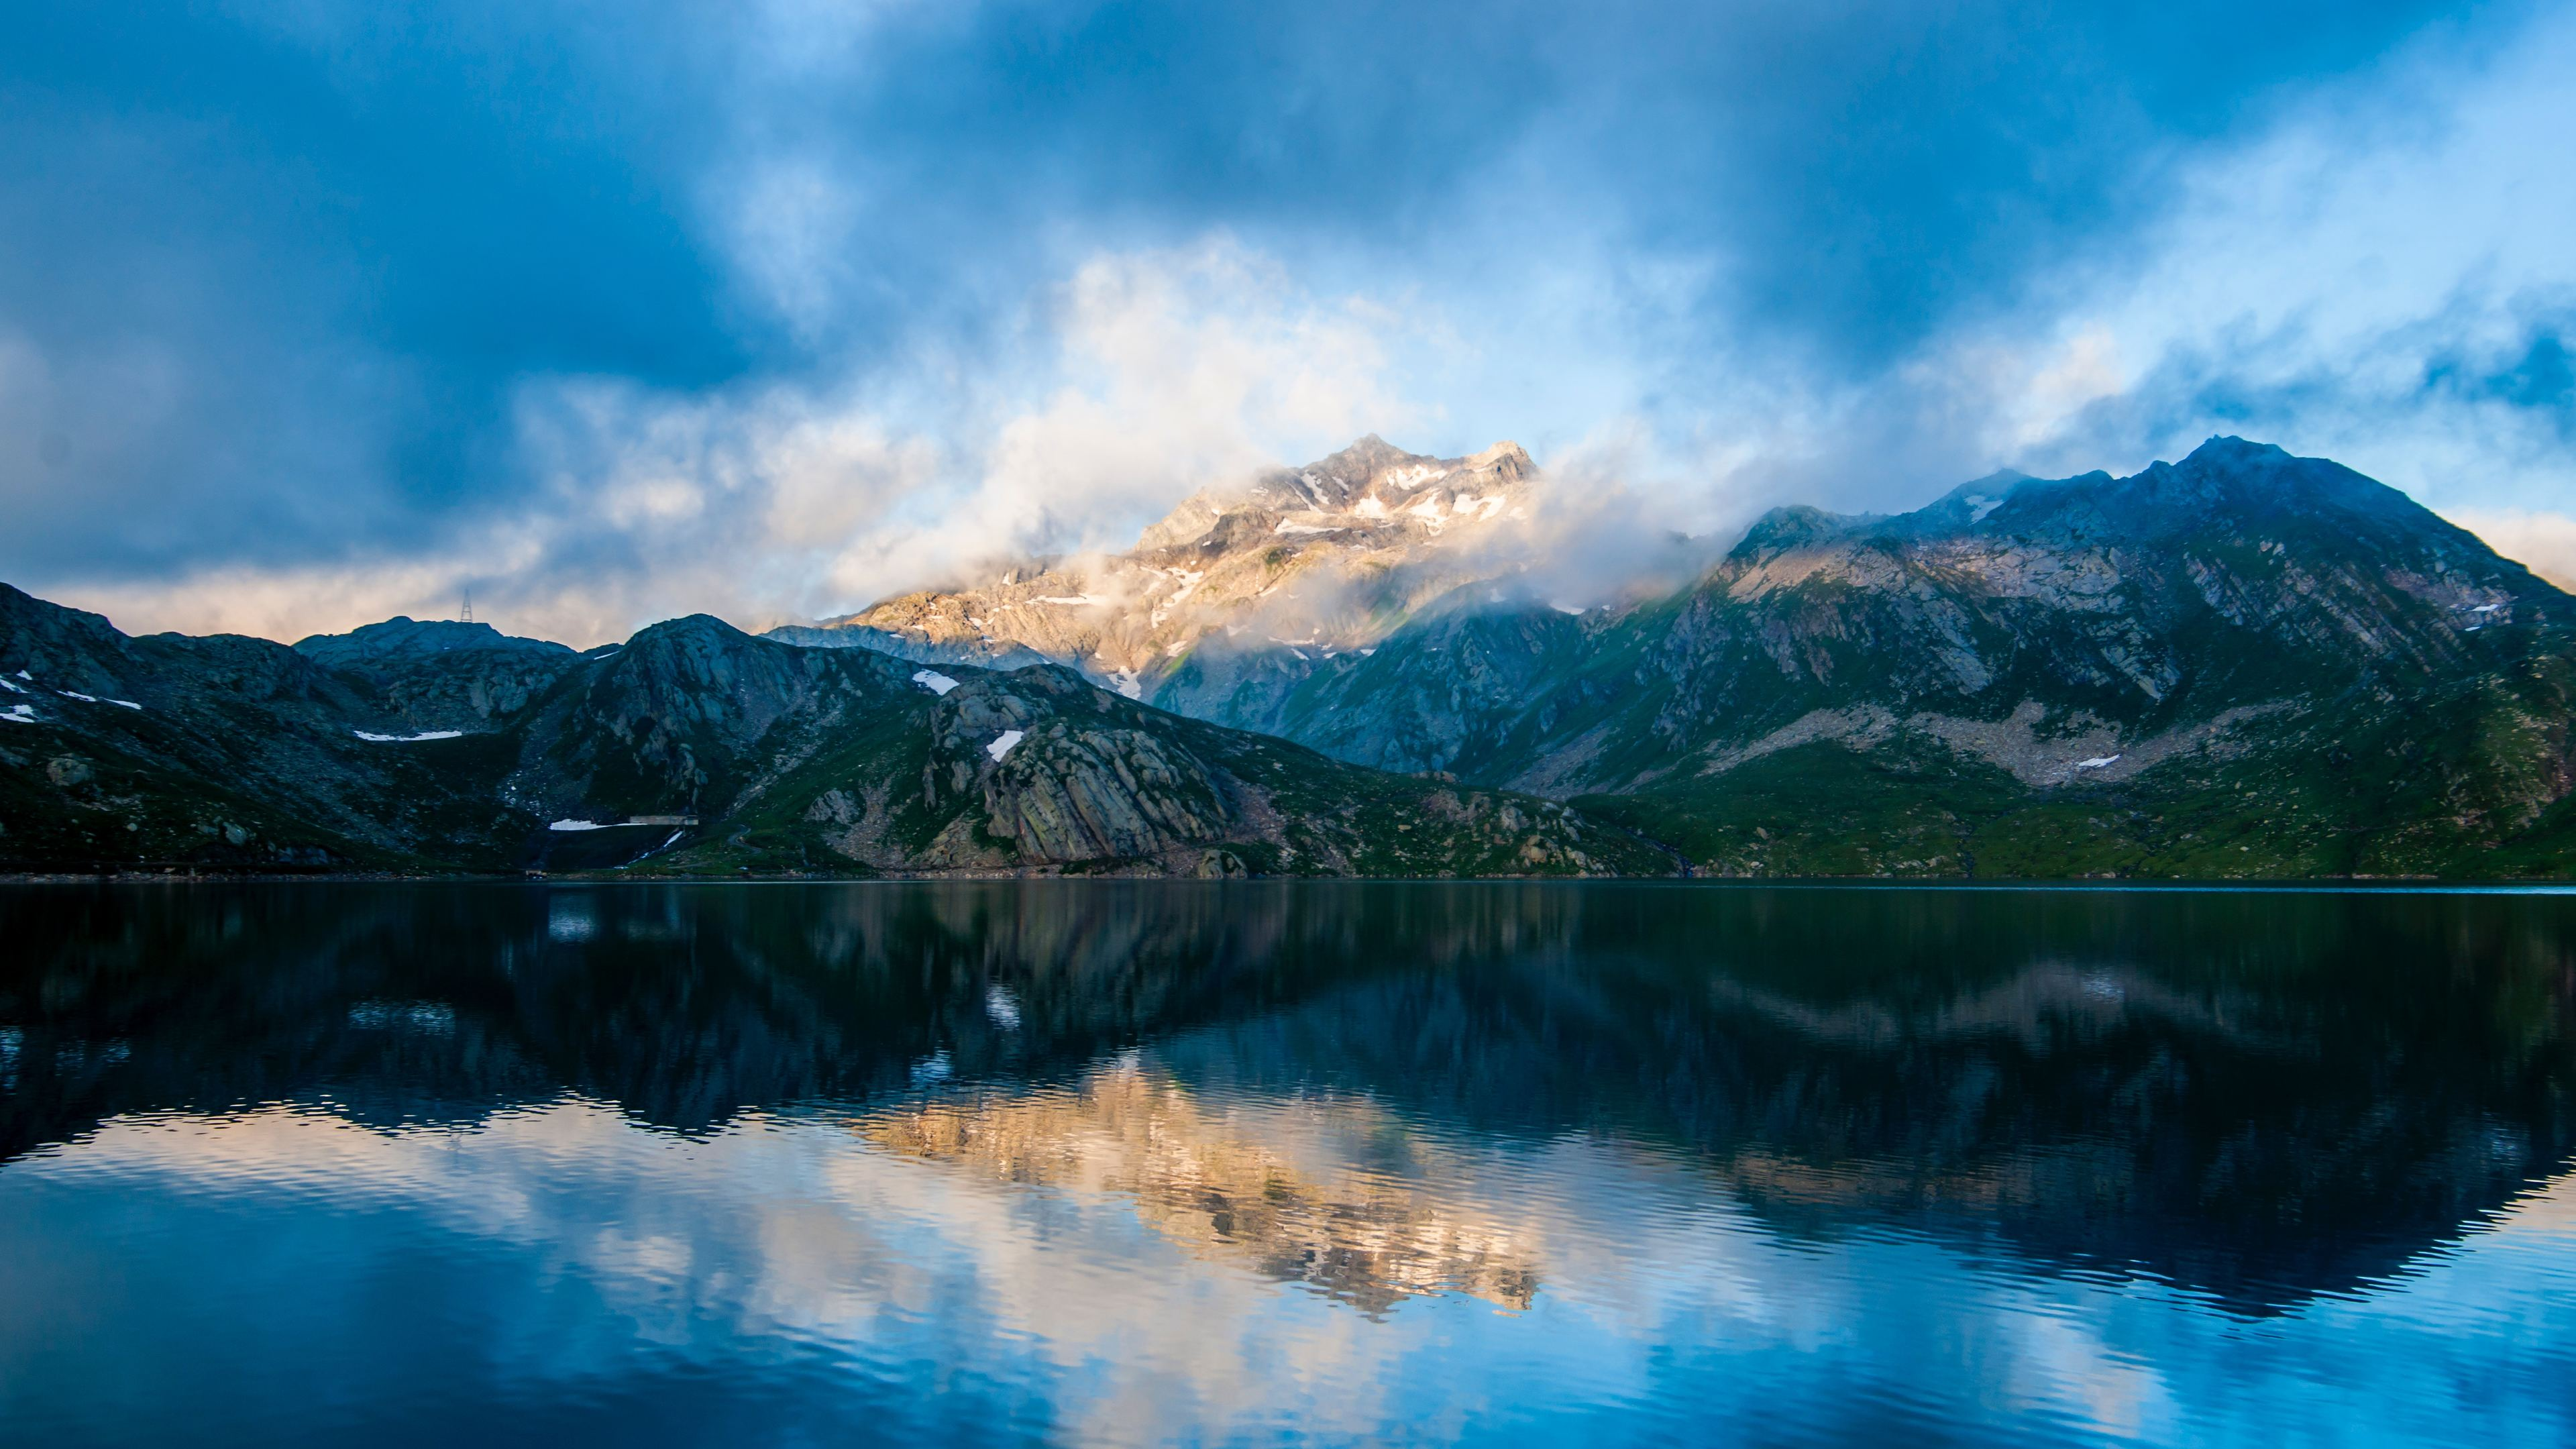 misty mountains 1540143170 - Misty Mountains - nature wallpapers, mountains wallpapers, mist wallpapers, hd-wallpapers, 4k-wallpapers